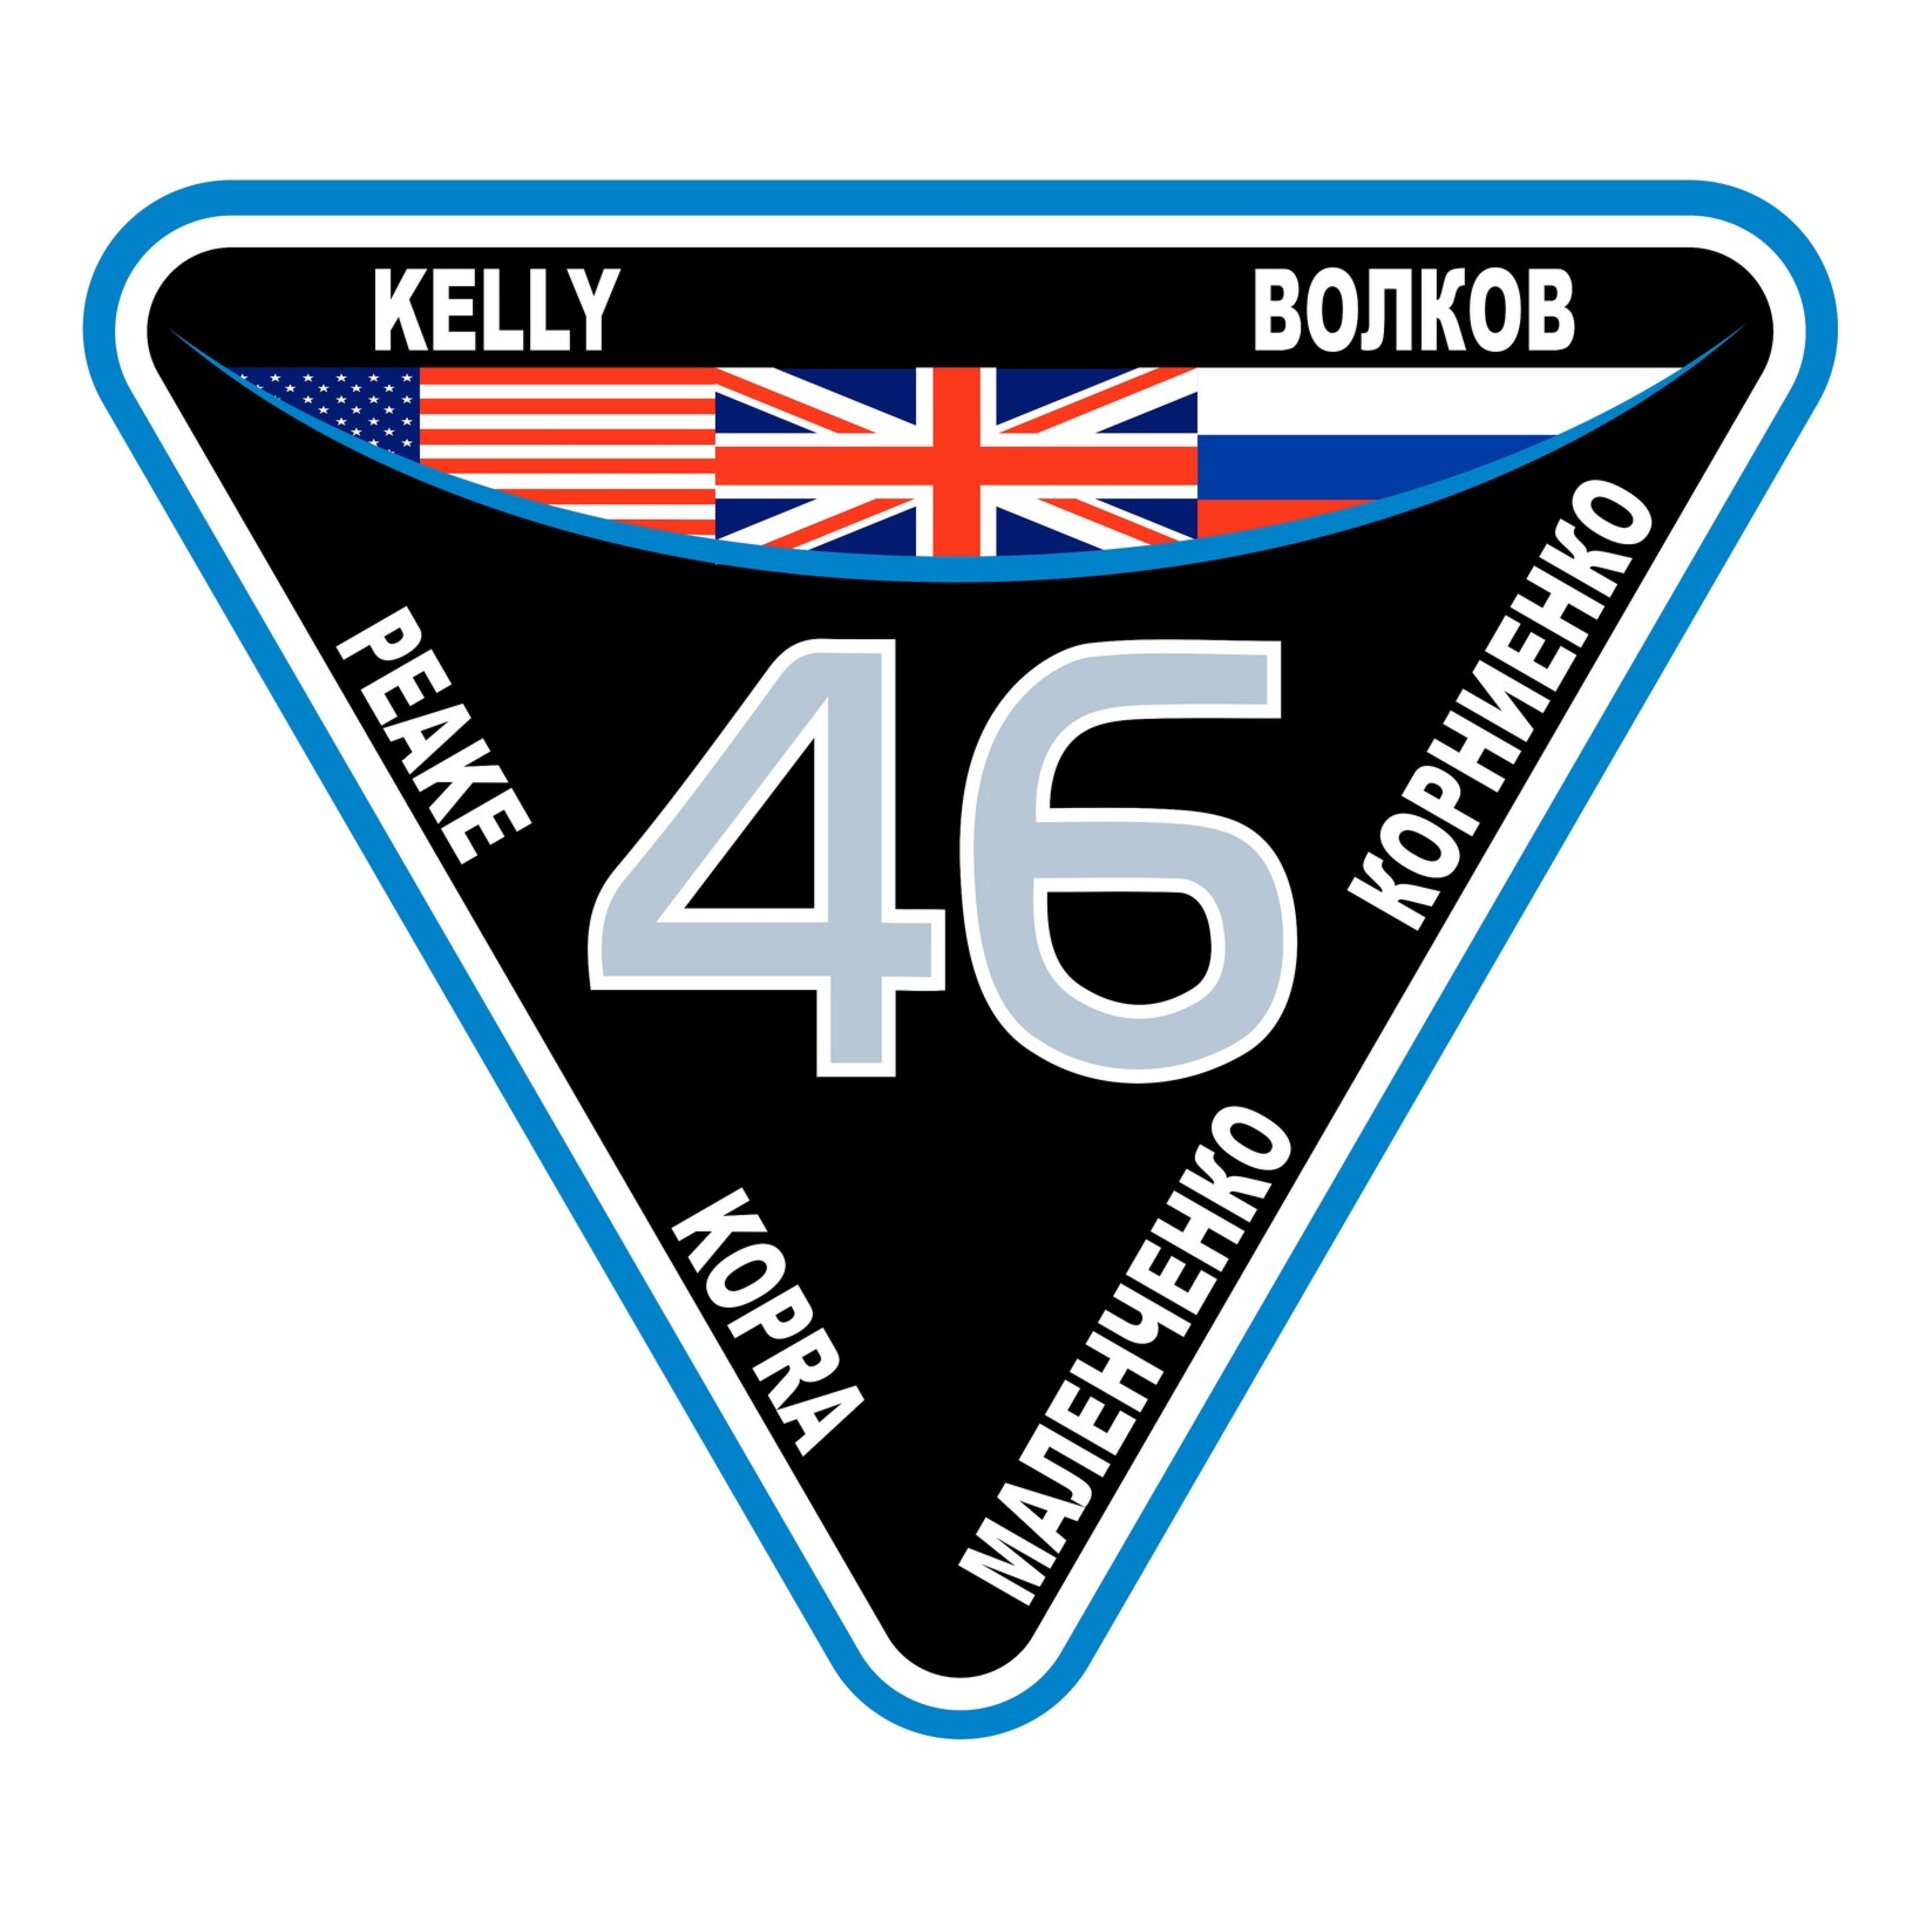 ISS Expedition 46 patch, 2015